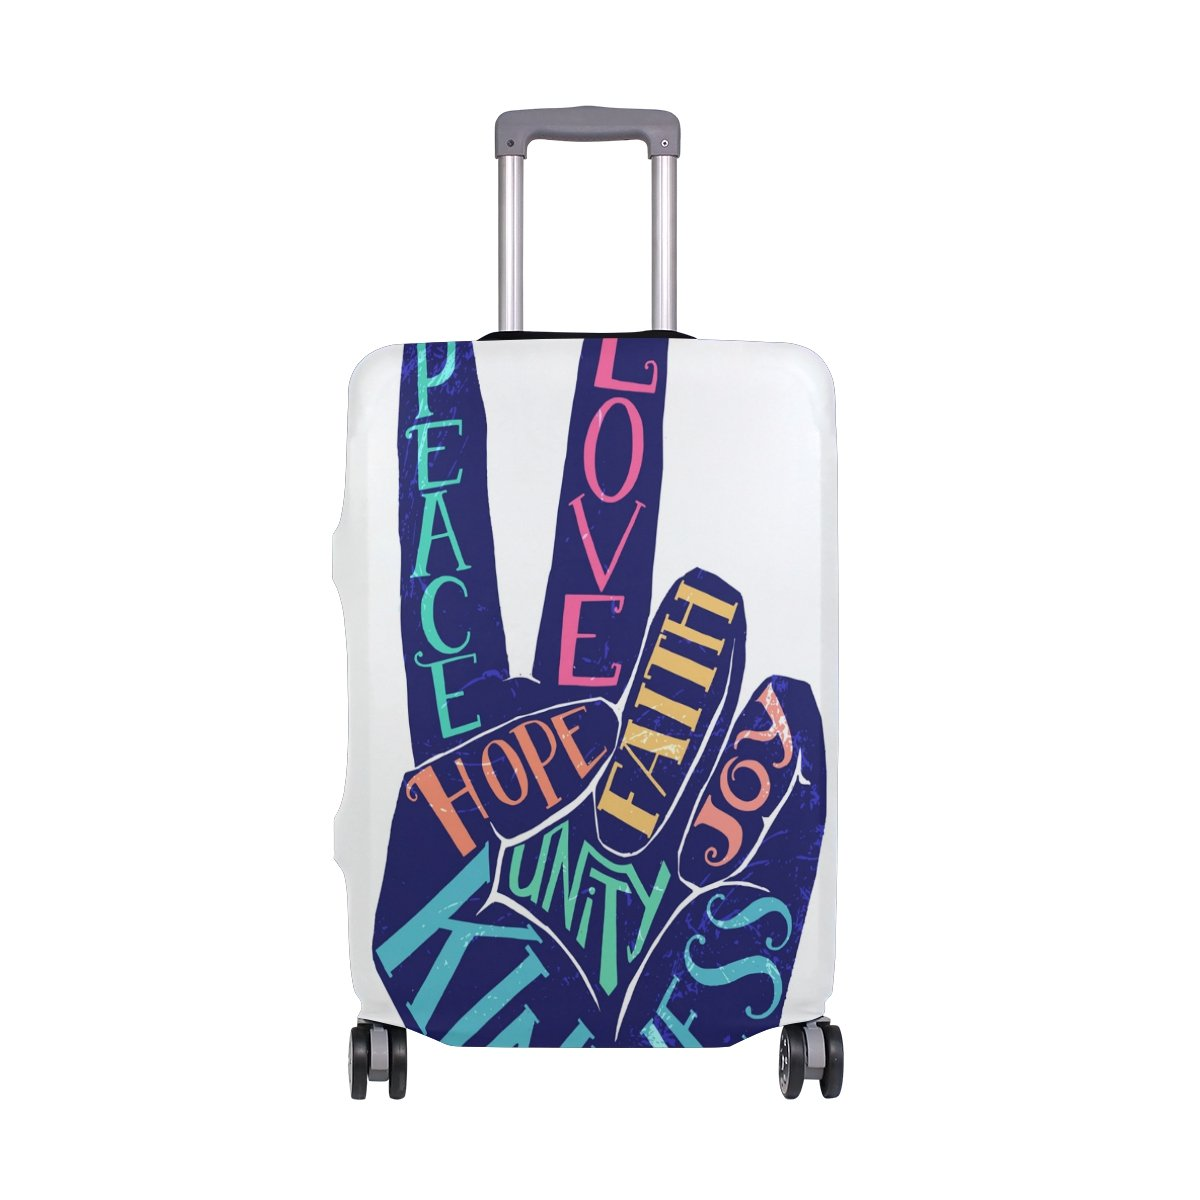 Cute Summer Love Peace Hippie Hope Joy Suitcase Luggage Cover Protector for Travel Kids Men Women